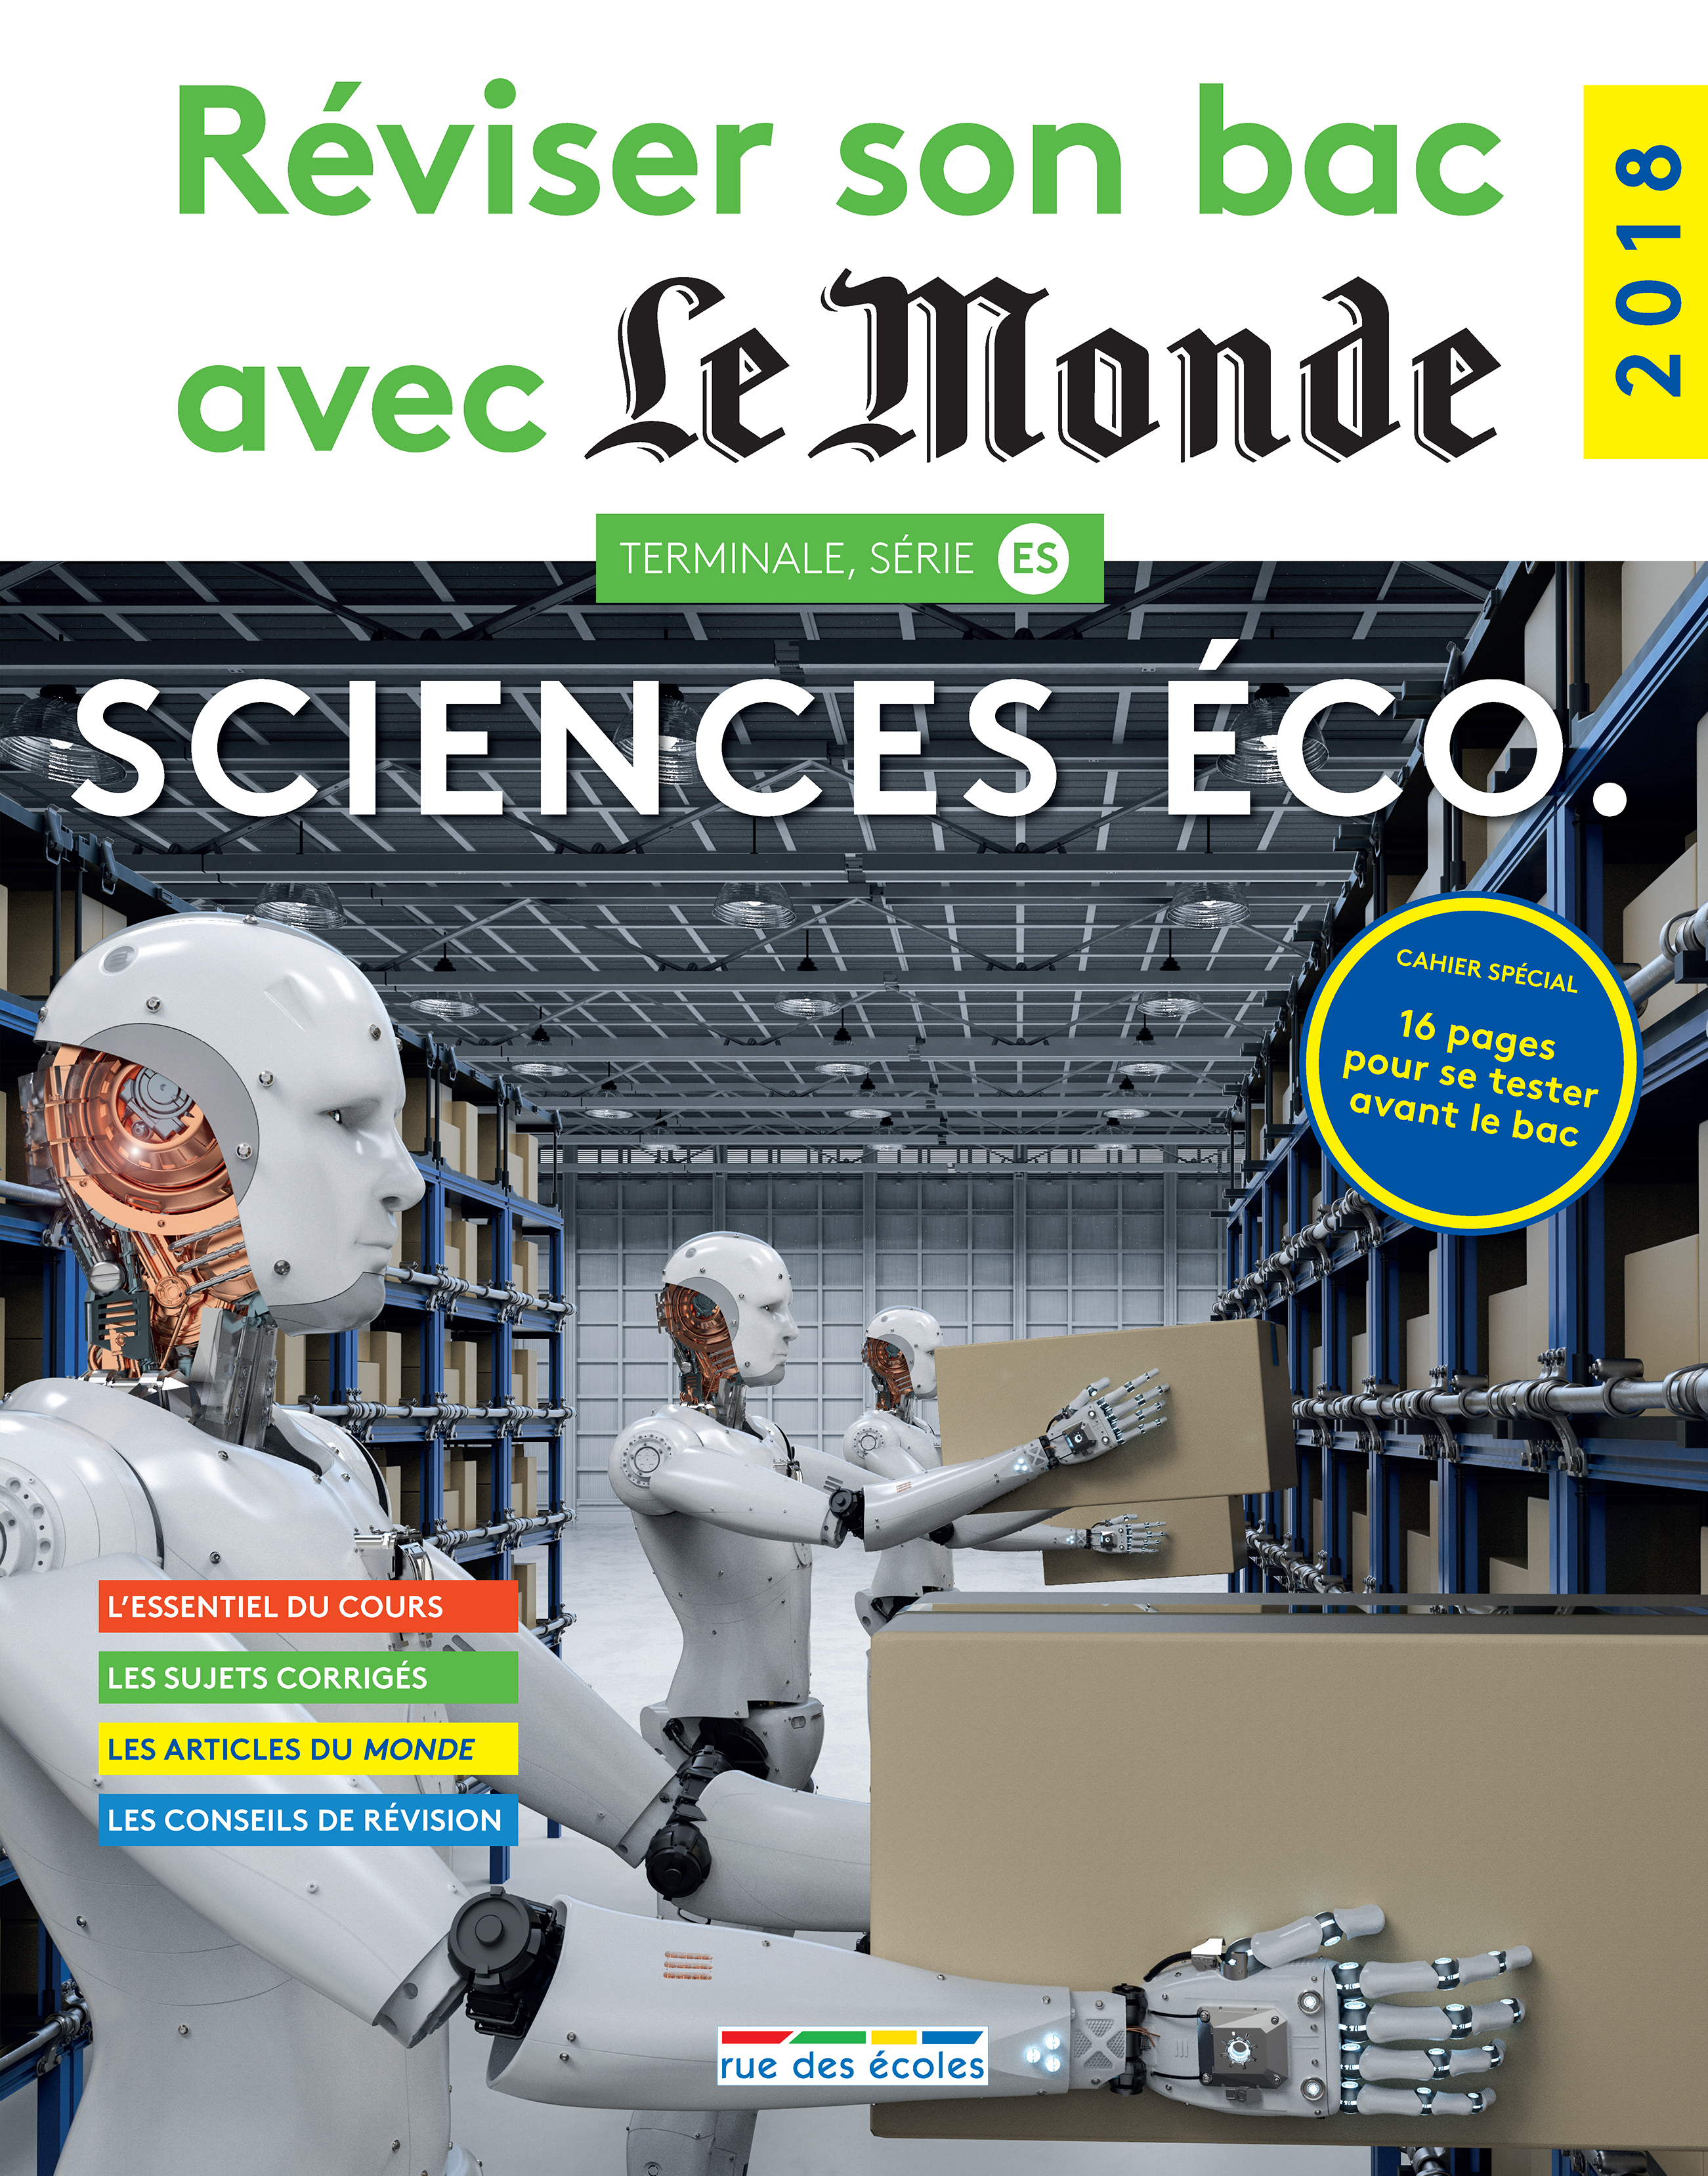 REVISER SON BAC AVEC LE MONDE : SCIENCES ECO 2018